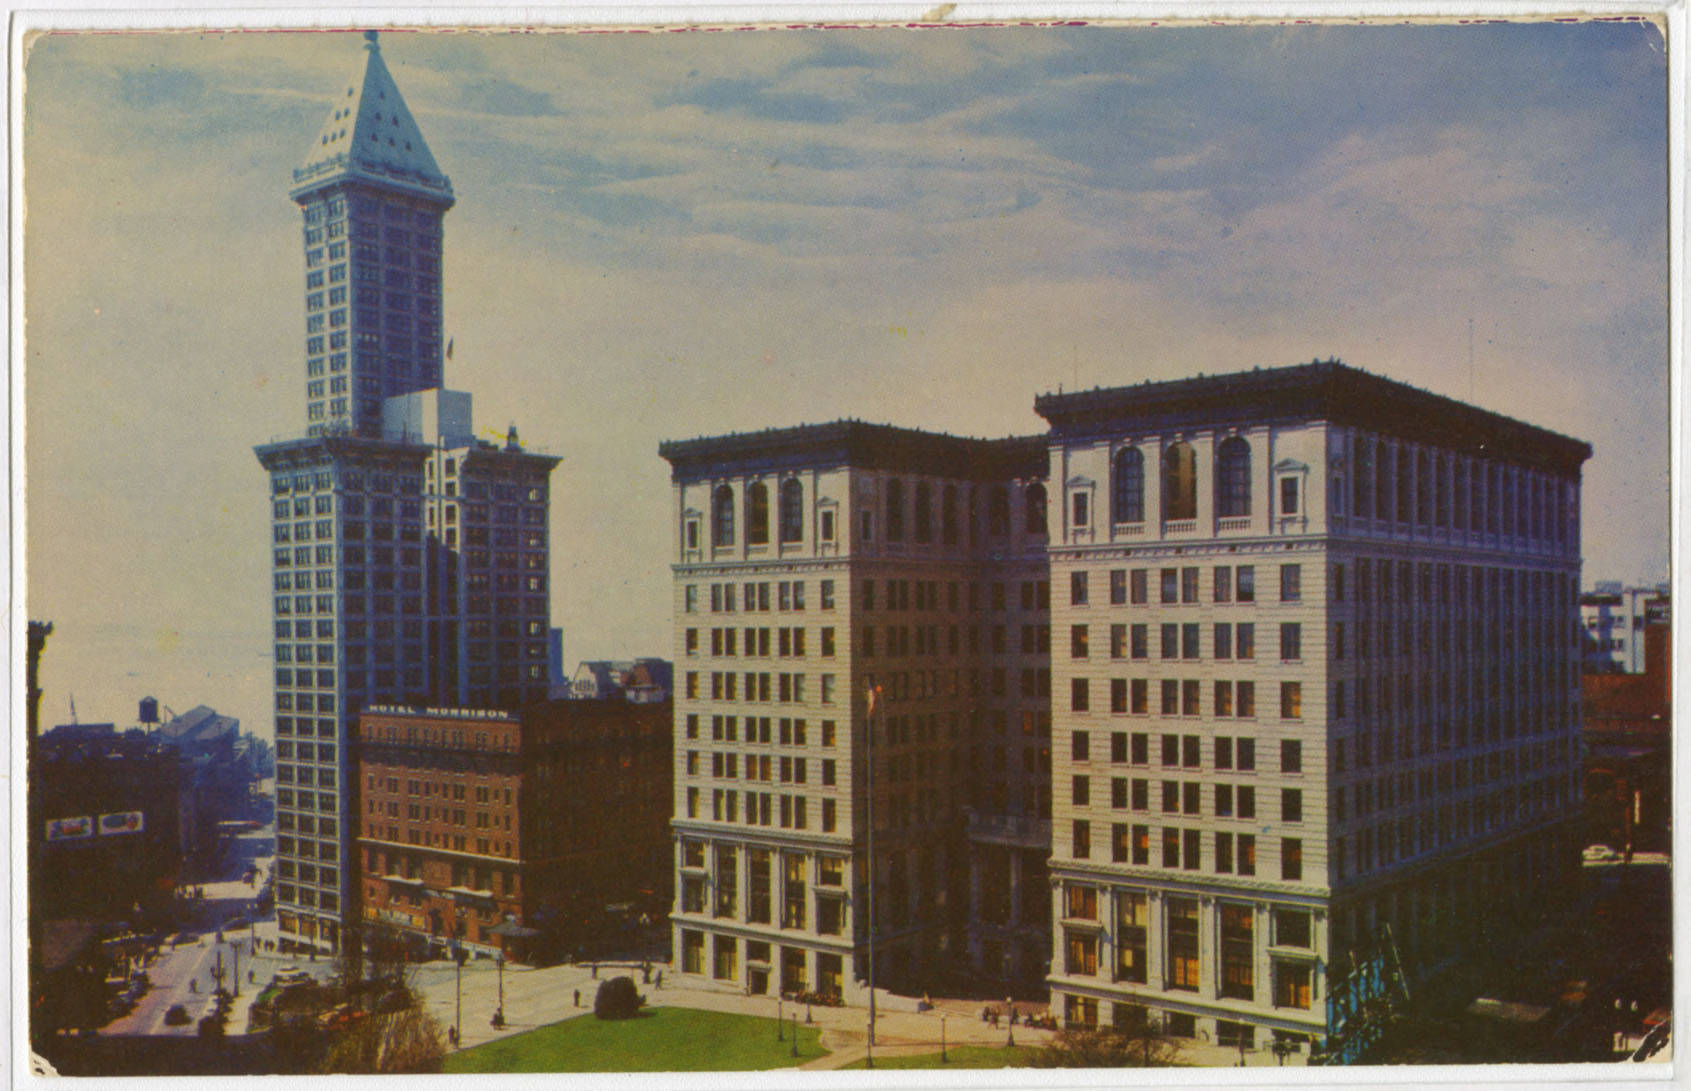 Smith Tower, Court House and City Hall, ca. 1950